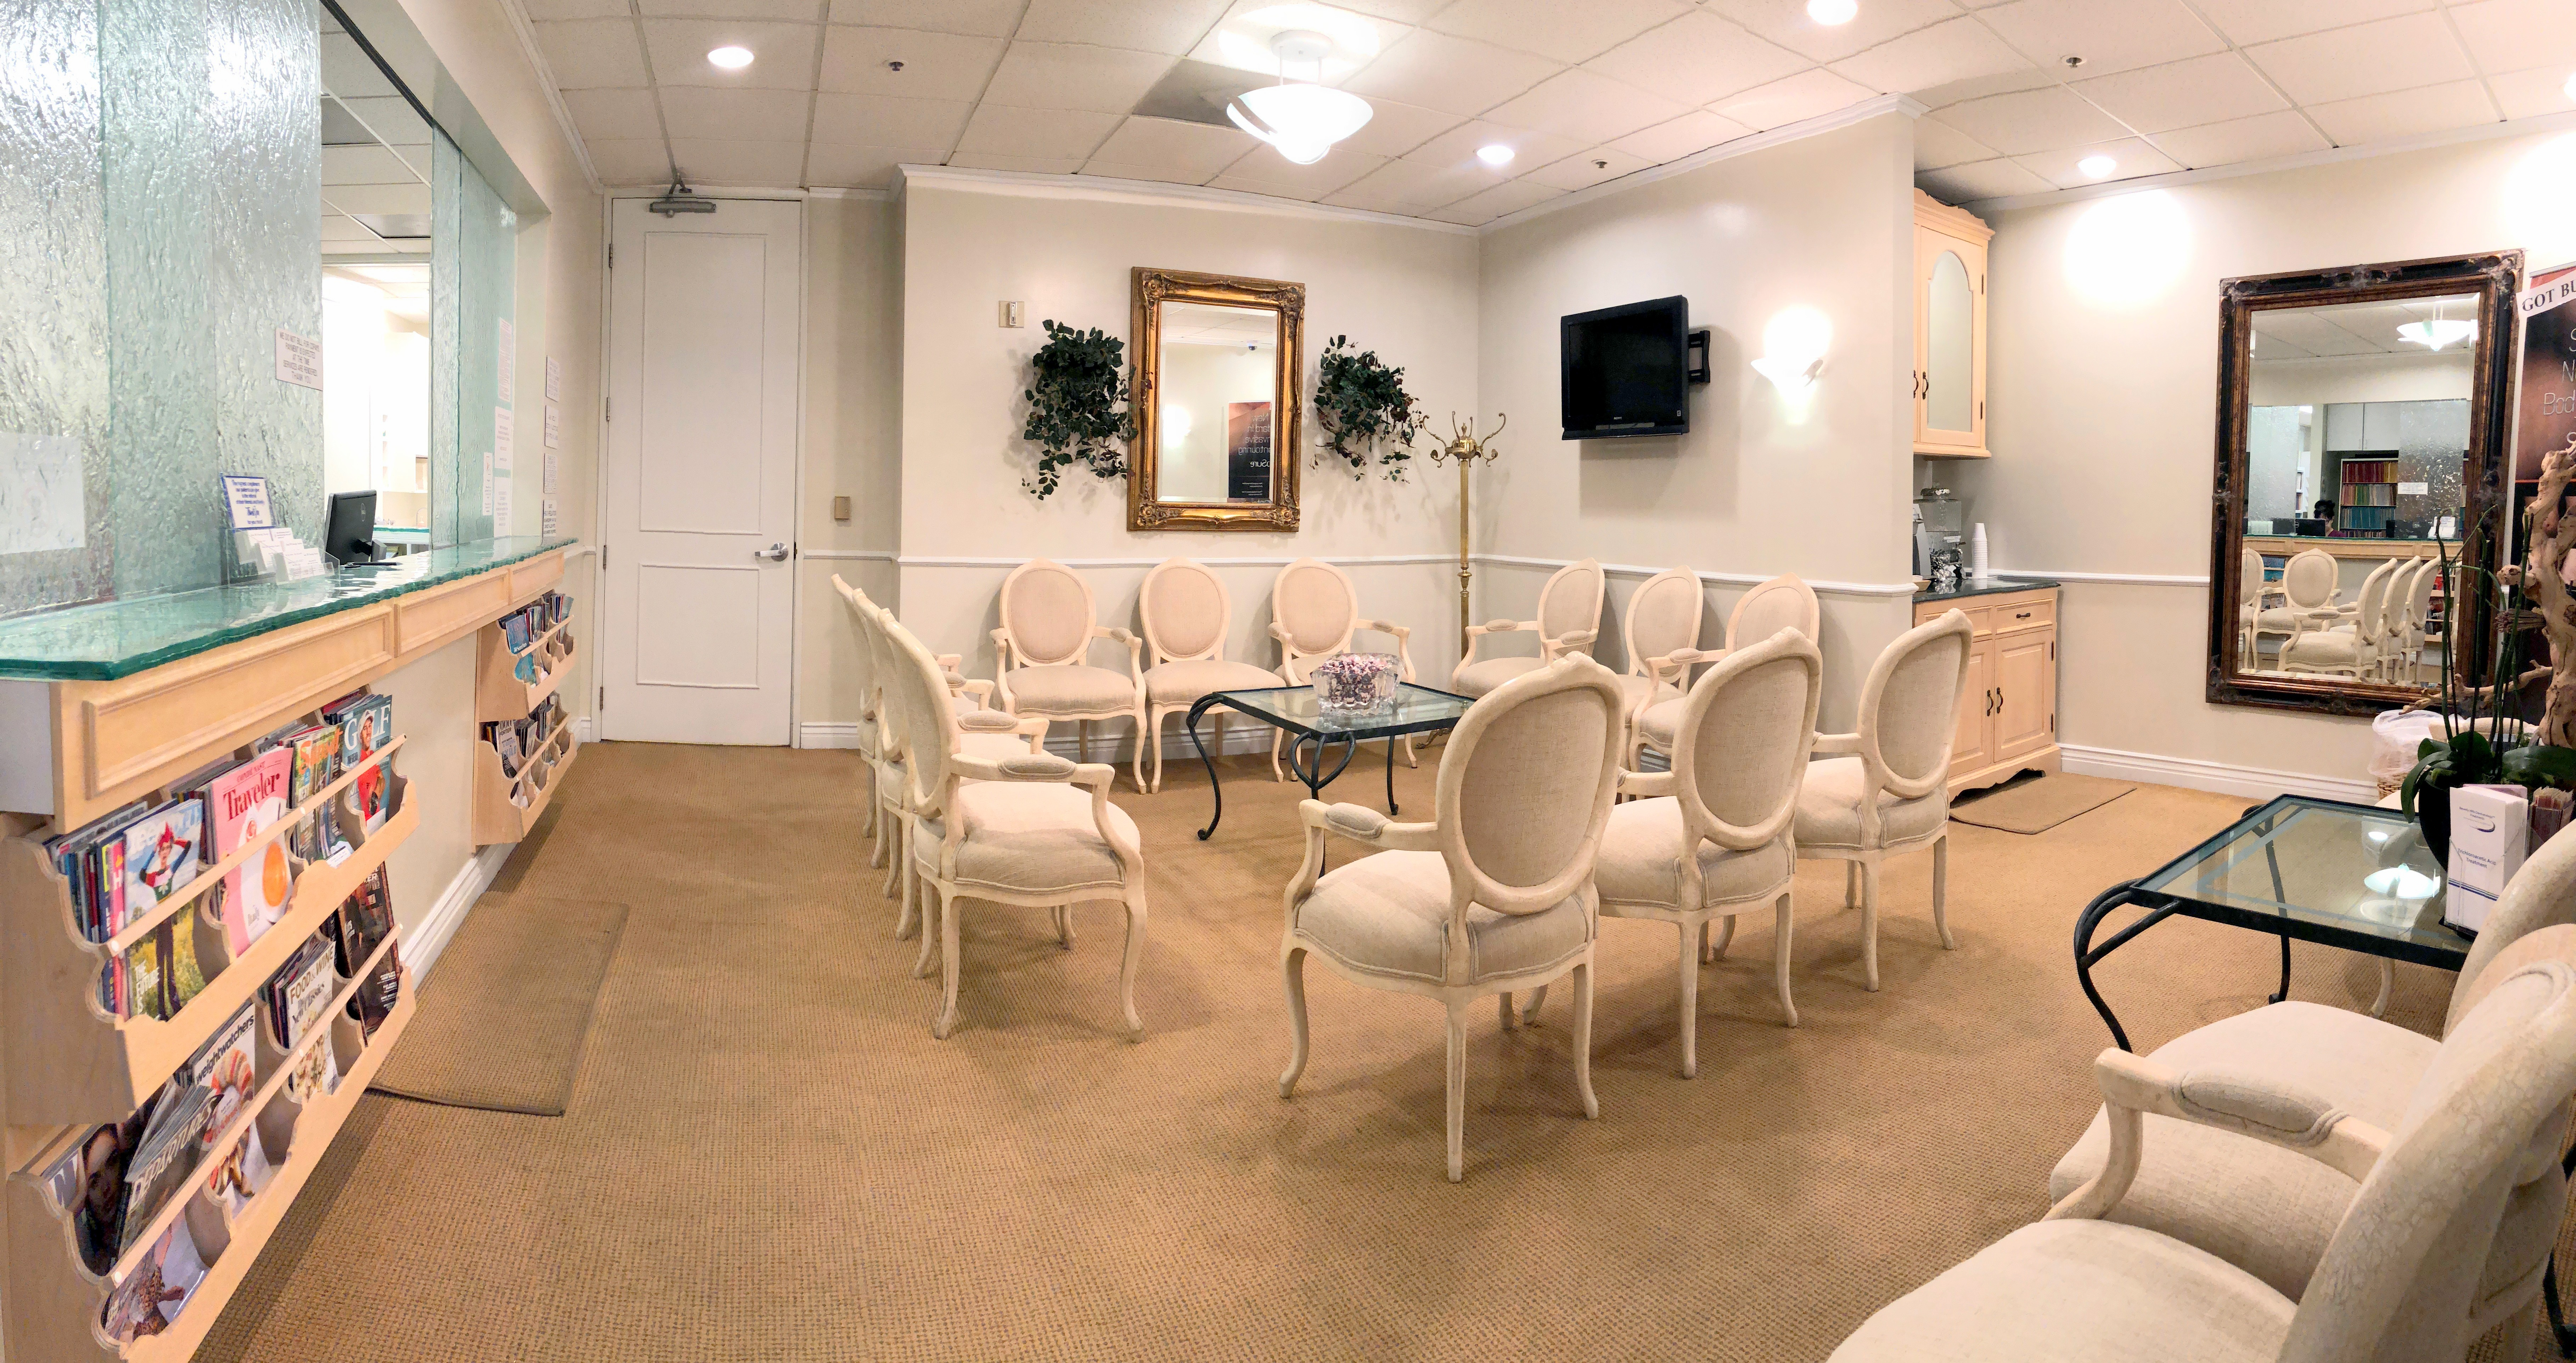 Beverly Hills Dermatology Consultants | Letantia Bussell